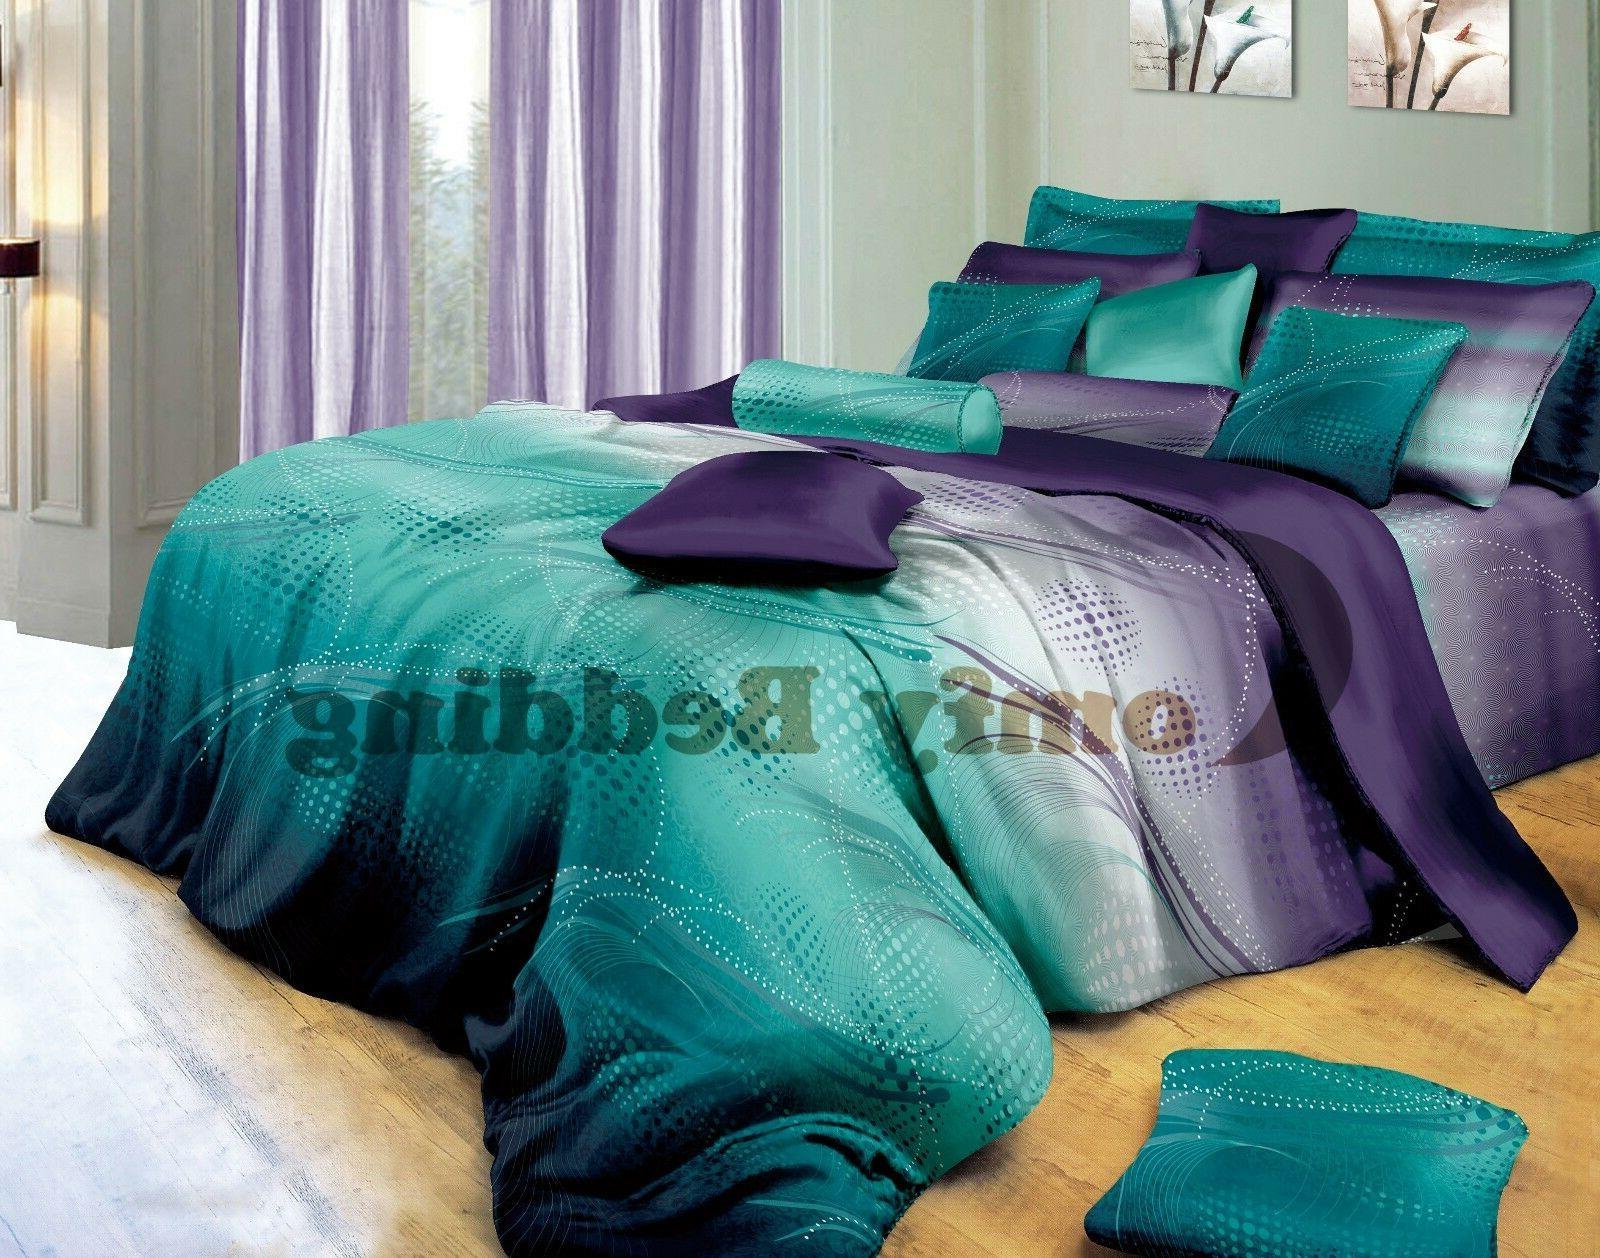 twilight luxury cotton bedding set duvet cover